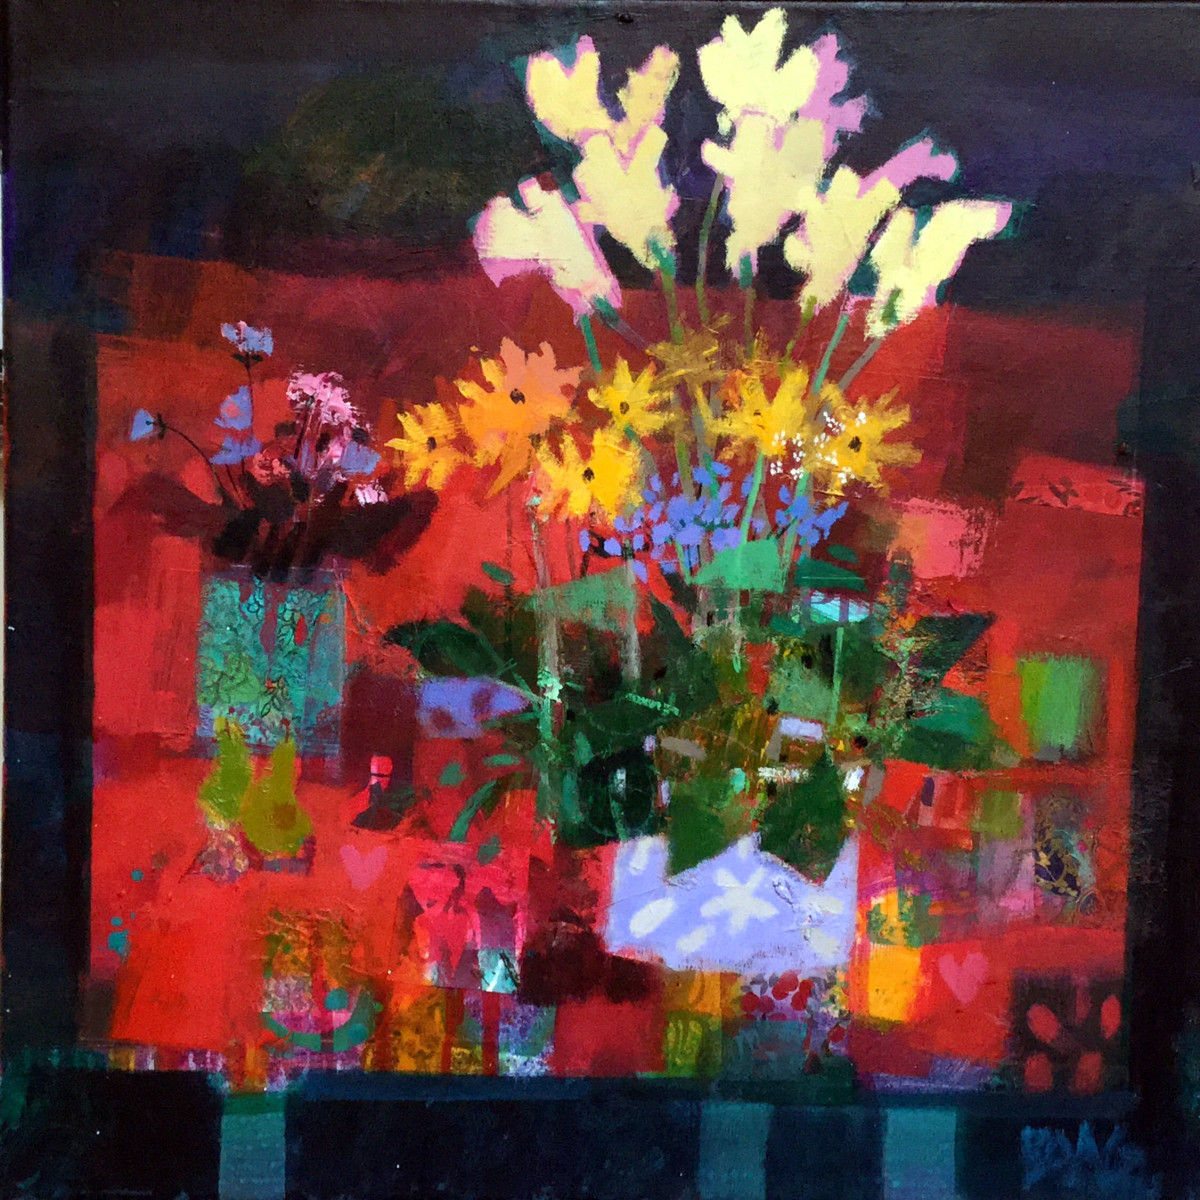 Wild Flowers & pears by francis boag